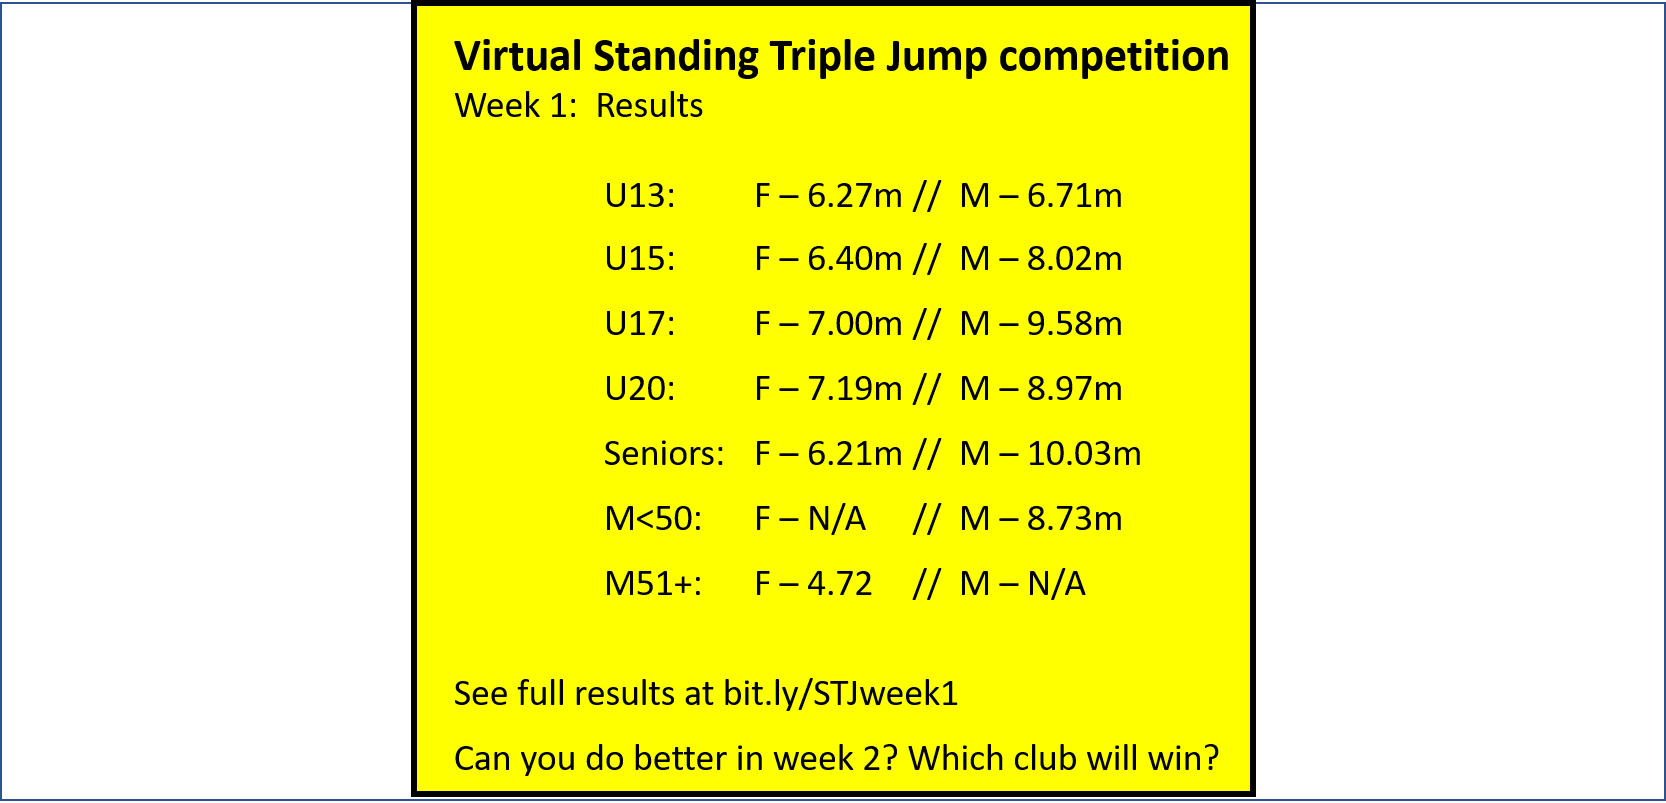 Virtual Standing Triple Jump Competition - Week 1 leaderboard